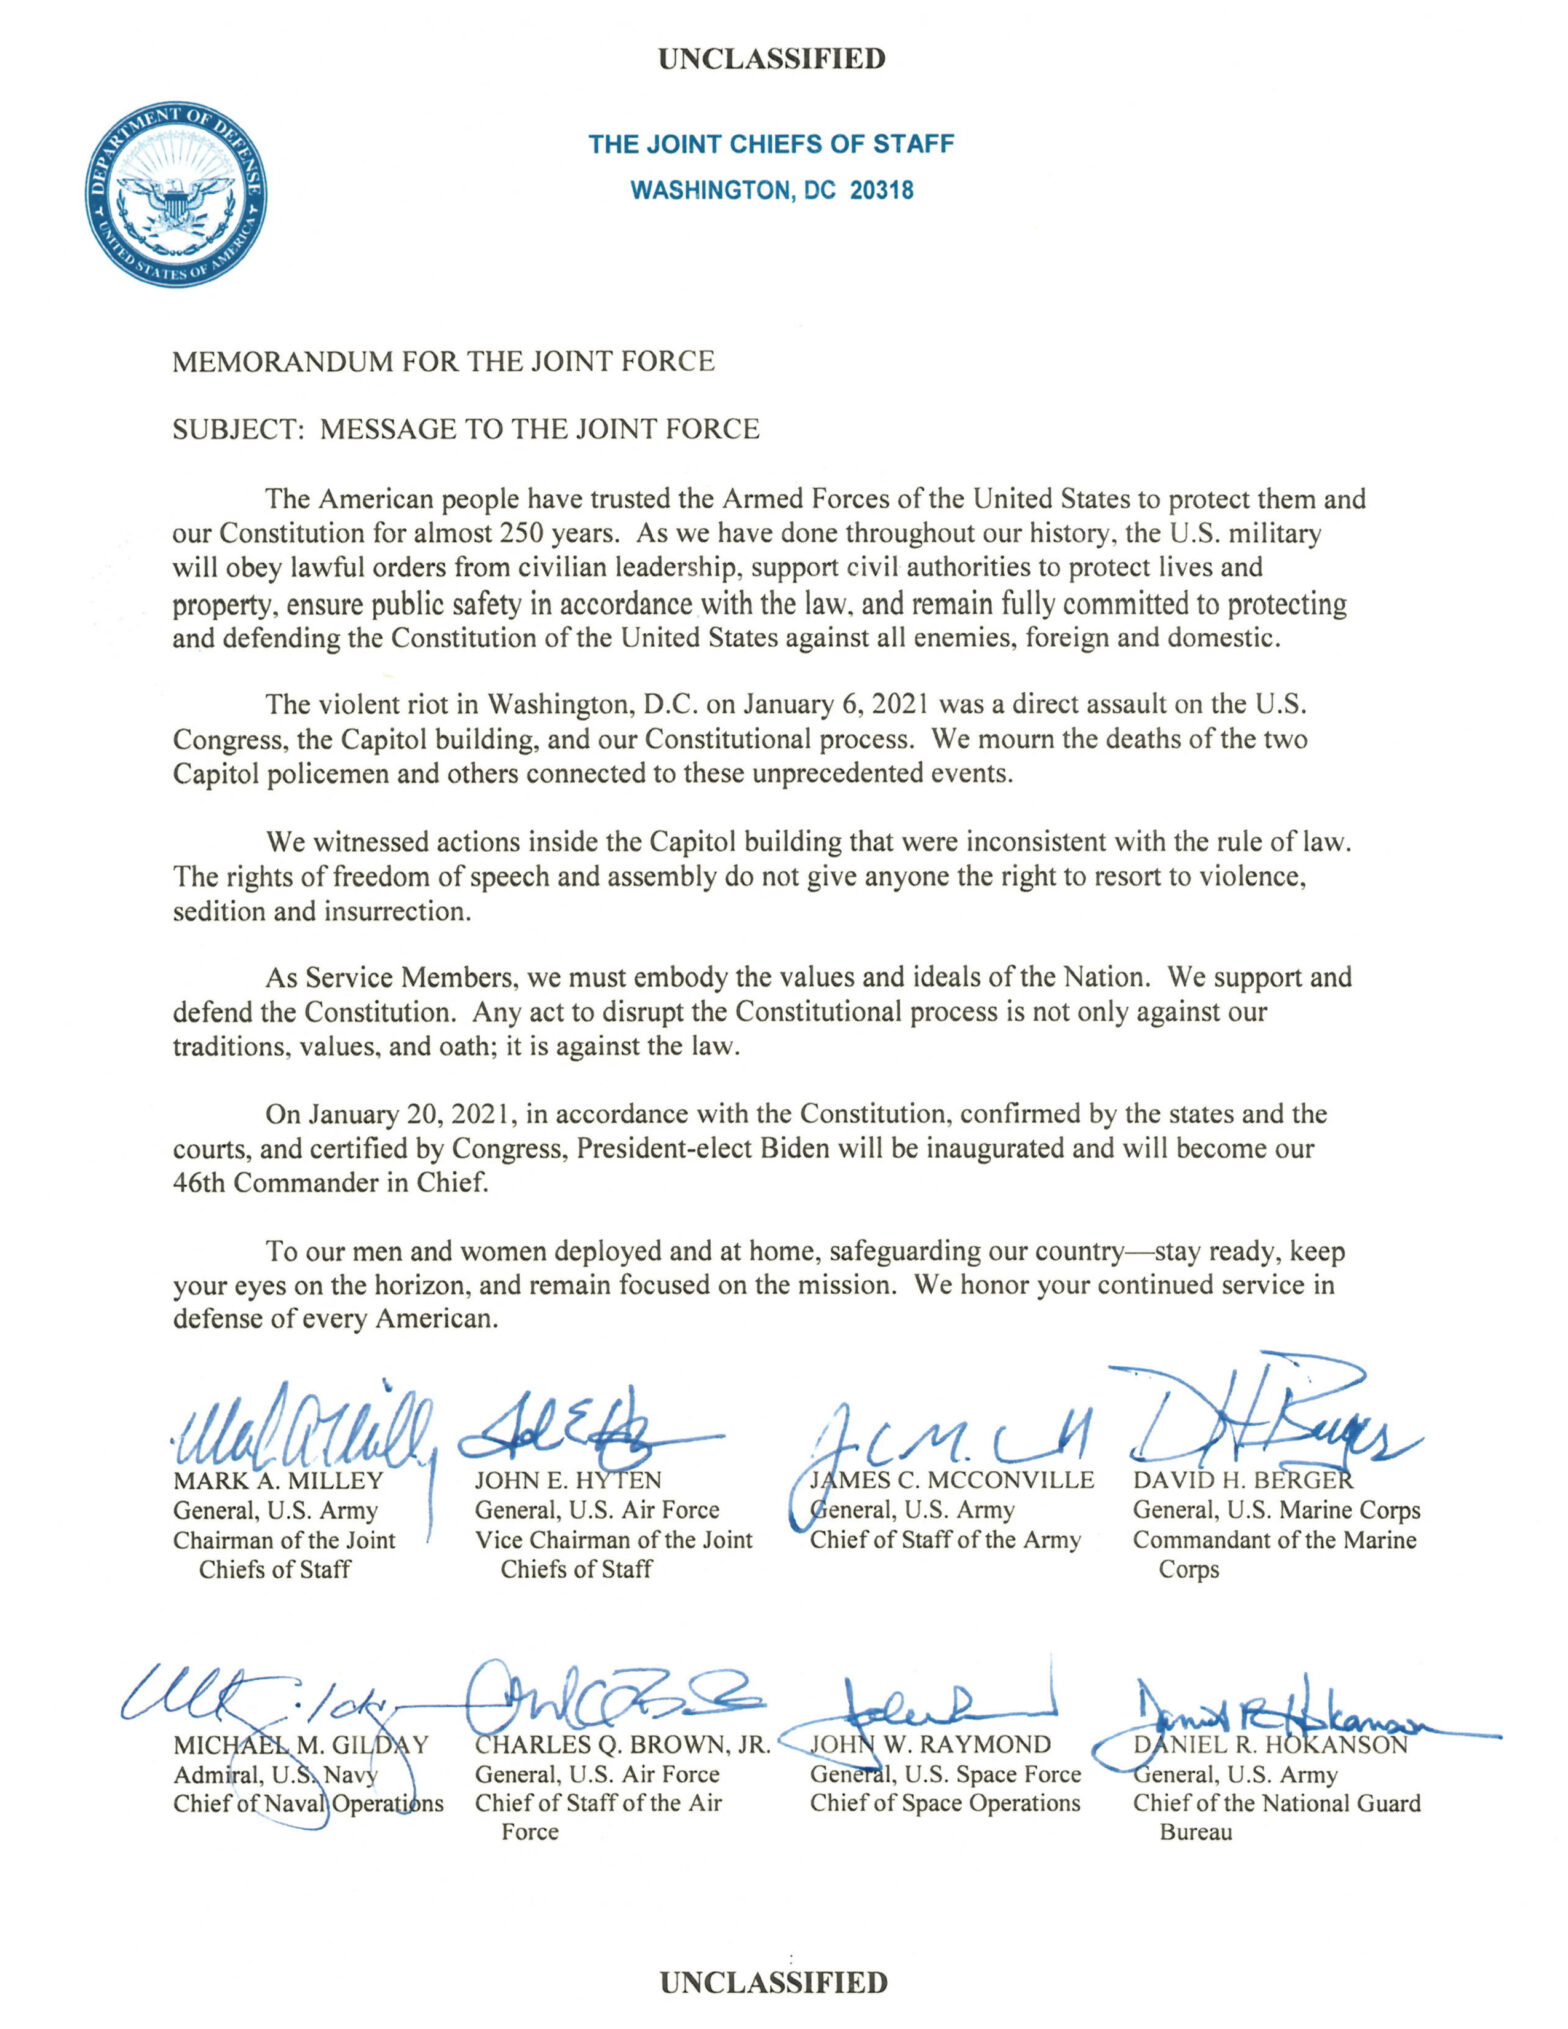 Letter from the Joint Chiefs Of Staff, US Military